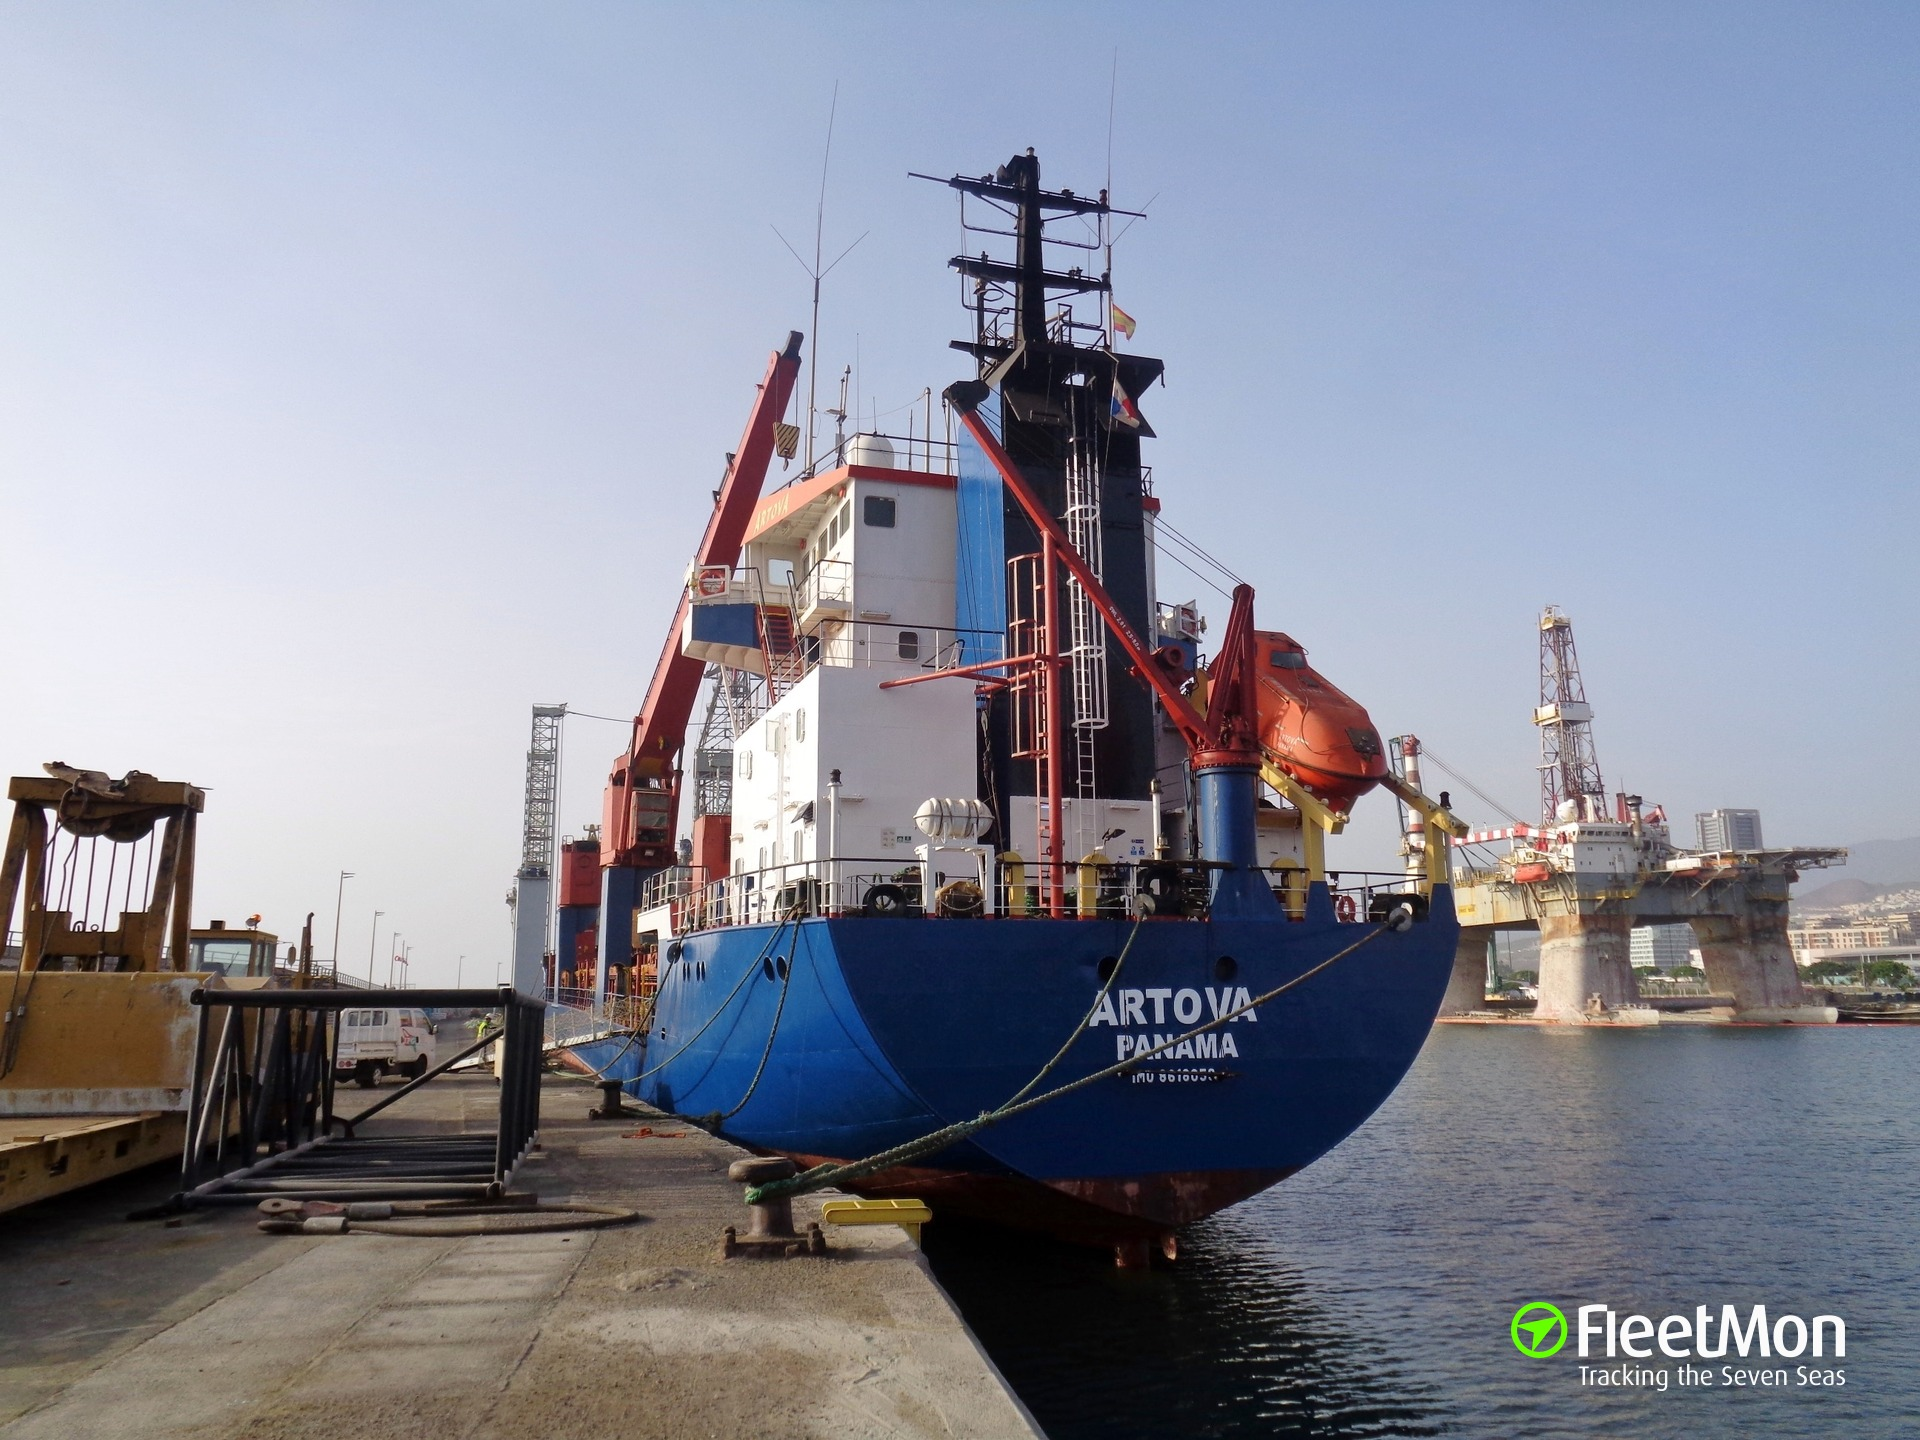 Freighter ARTOVA towed to Canary Islands